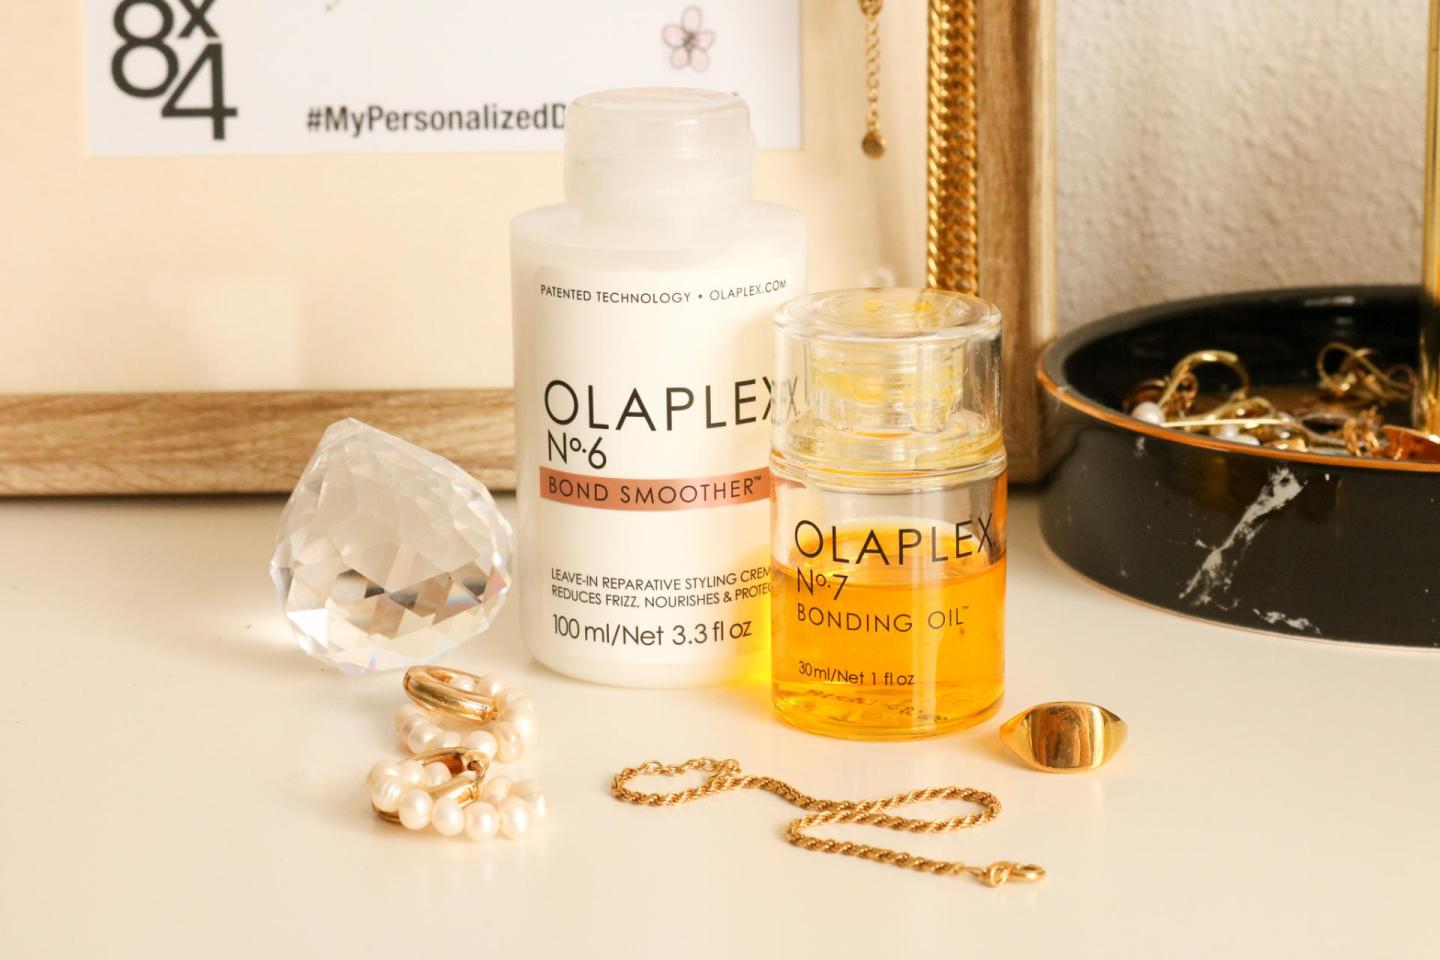 Olaplex no.6 Bond smoother and no.7 Bonding Oil